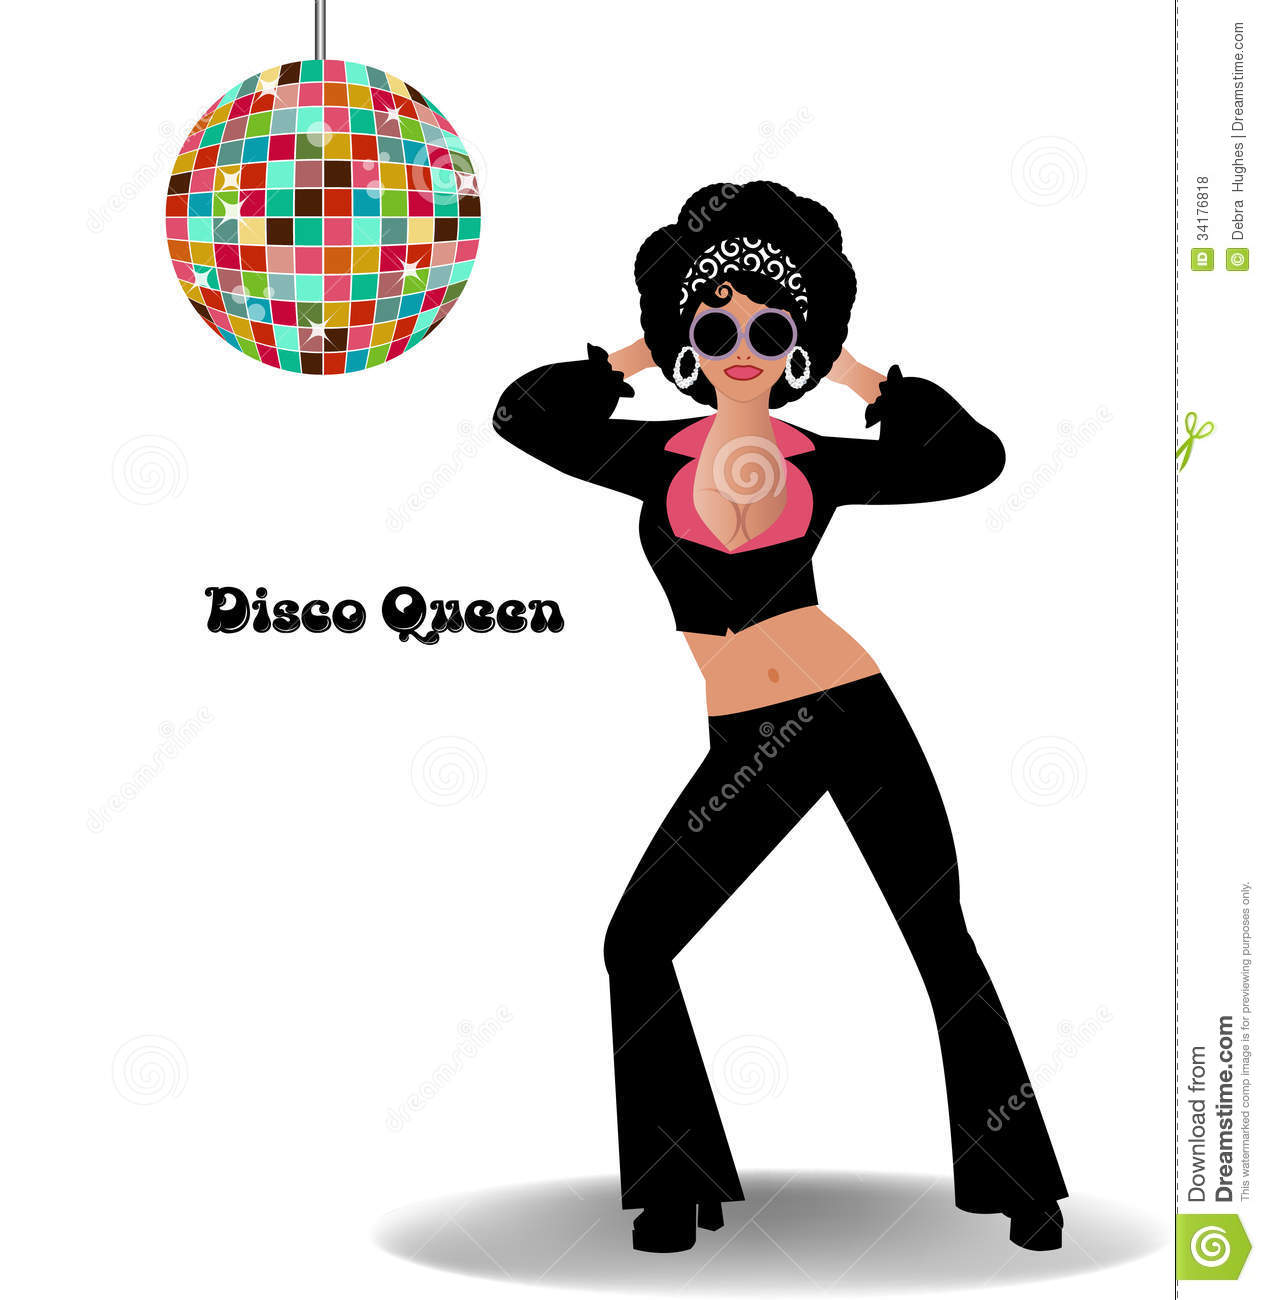 Disco Queen Royalty Free Stock Photos - Image: 34176818